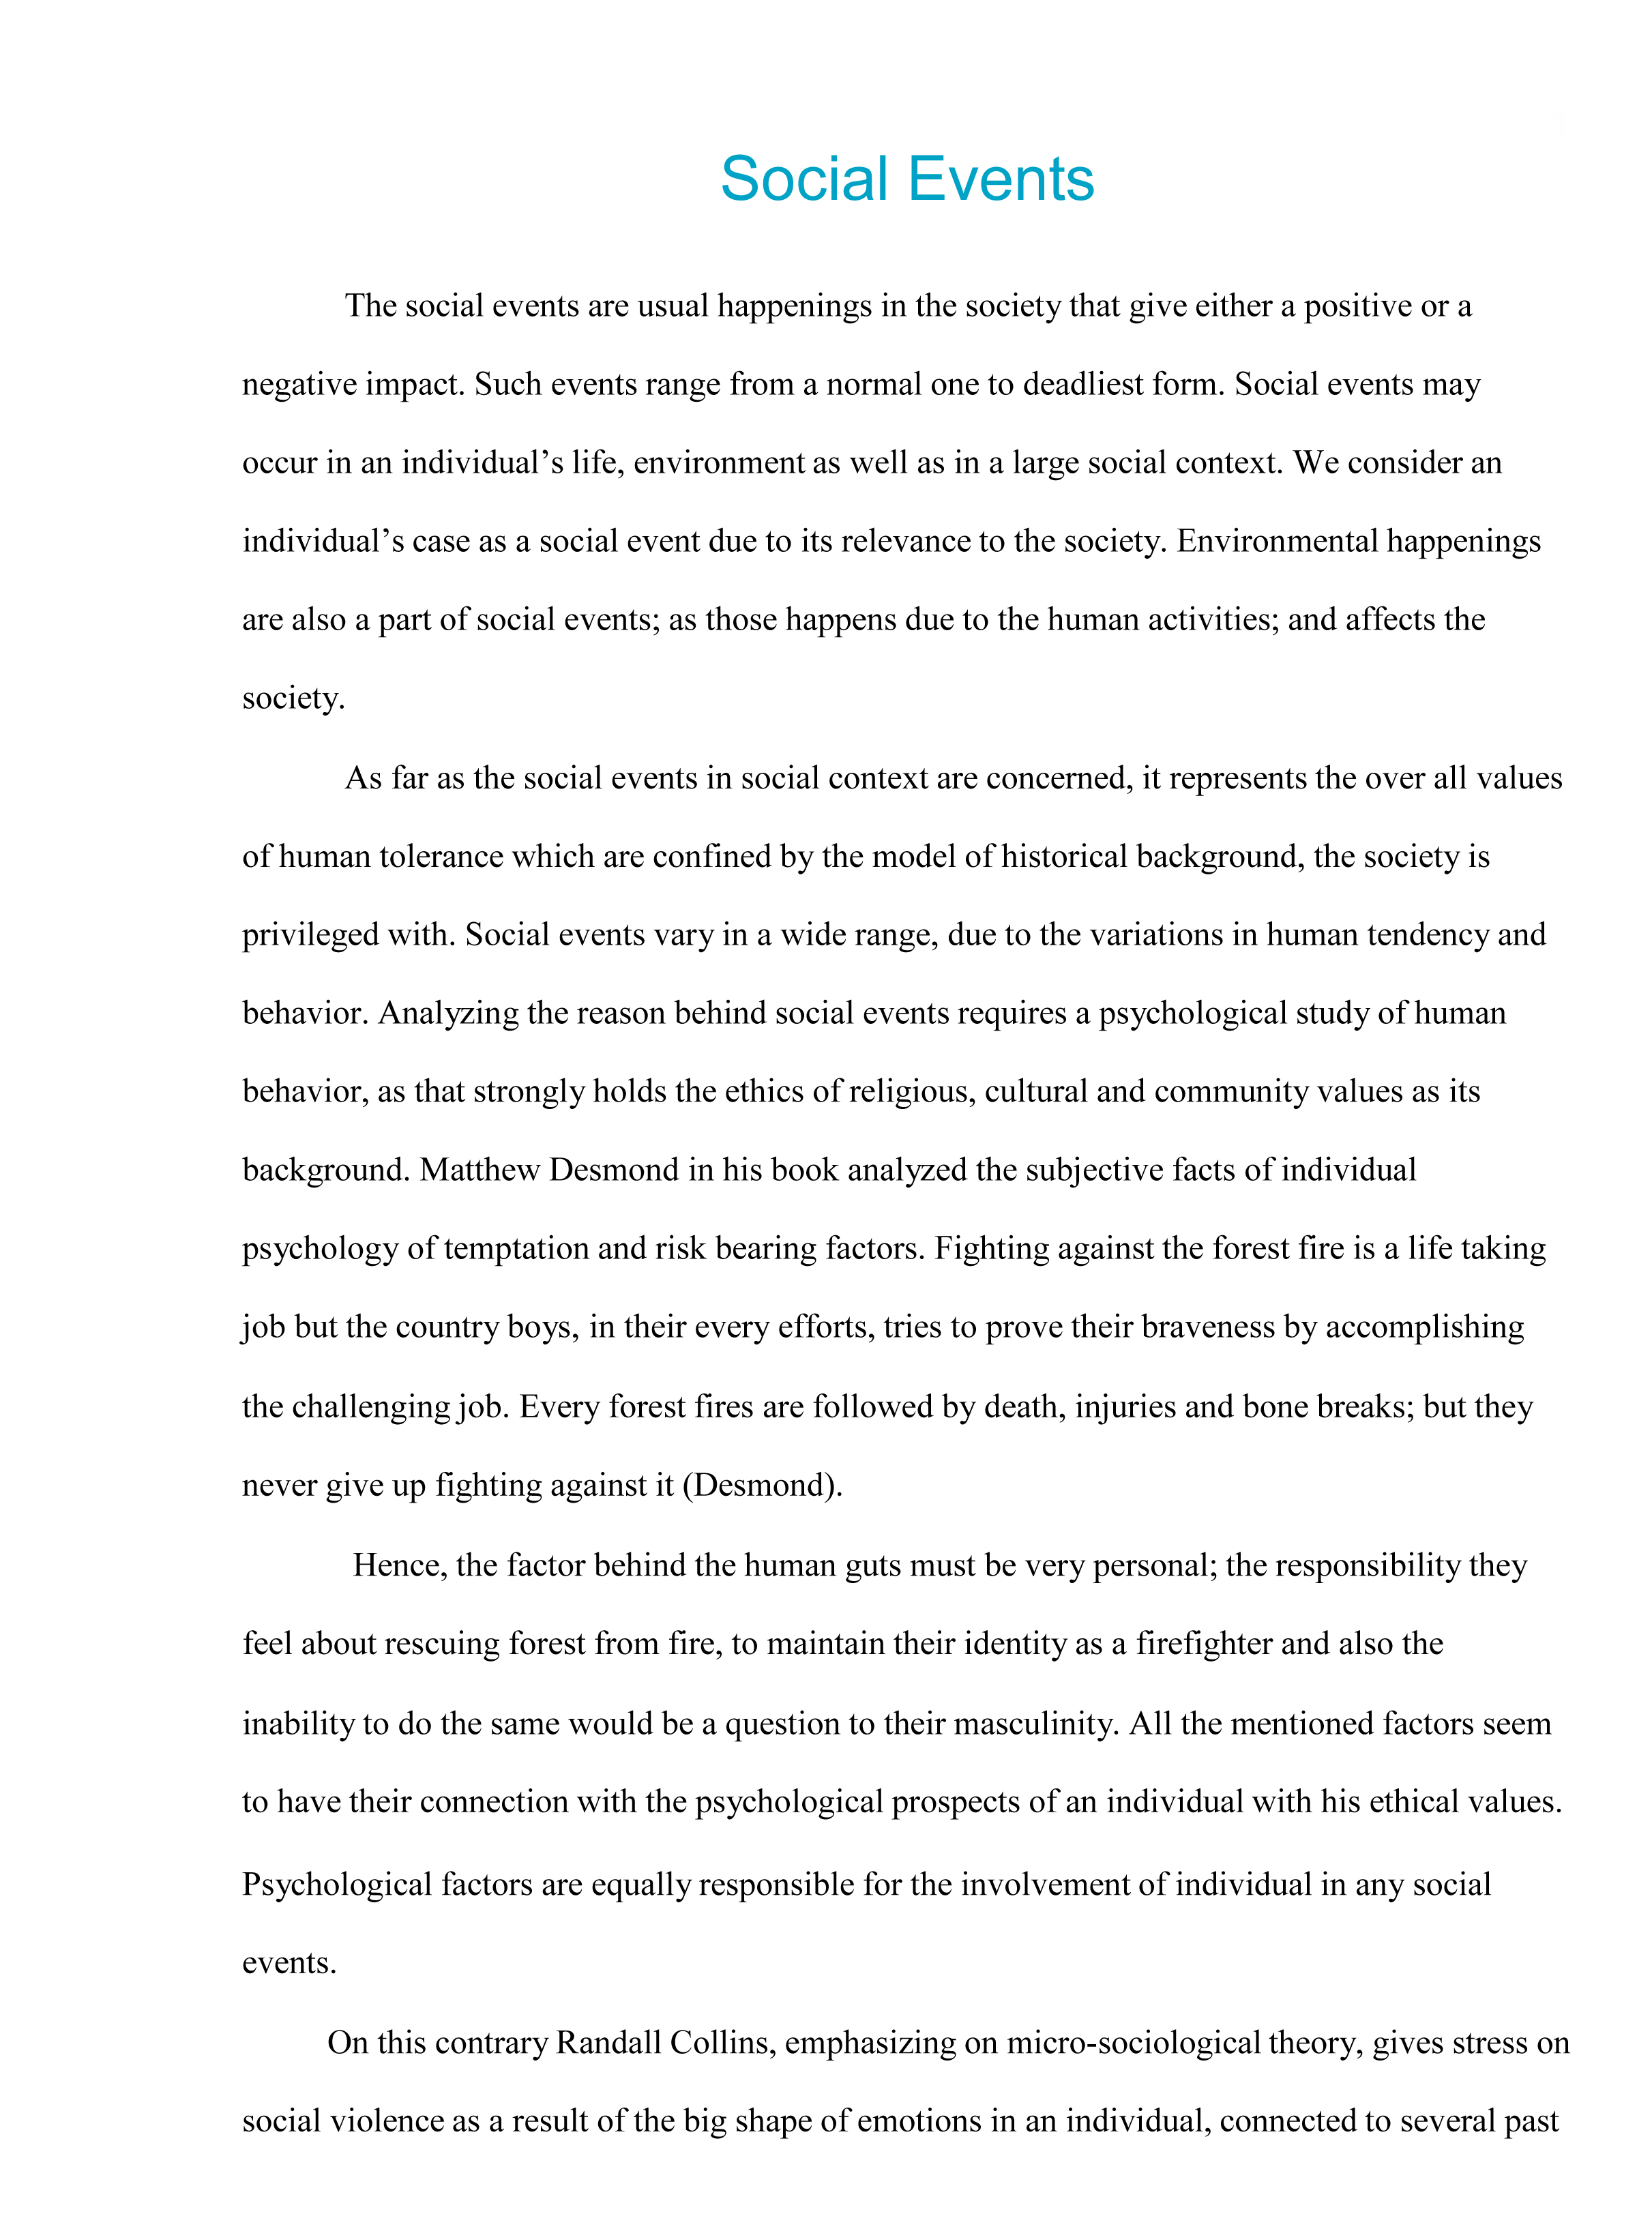 Term paper in pdf format cheap dissertation introduction editing for hire for mba